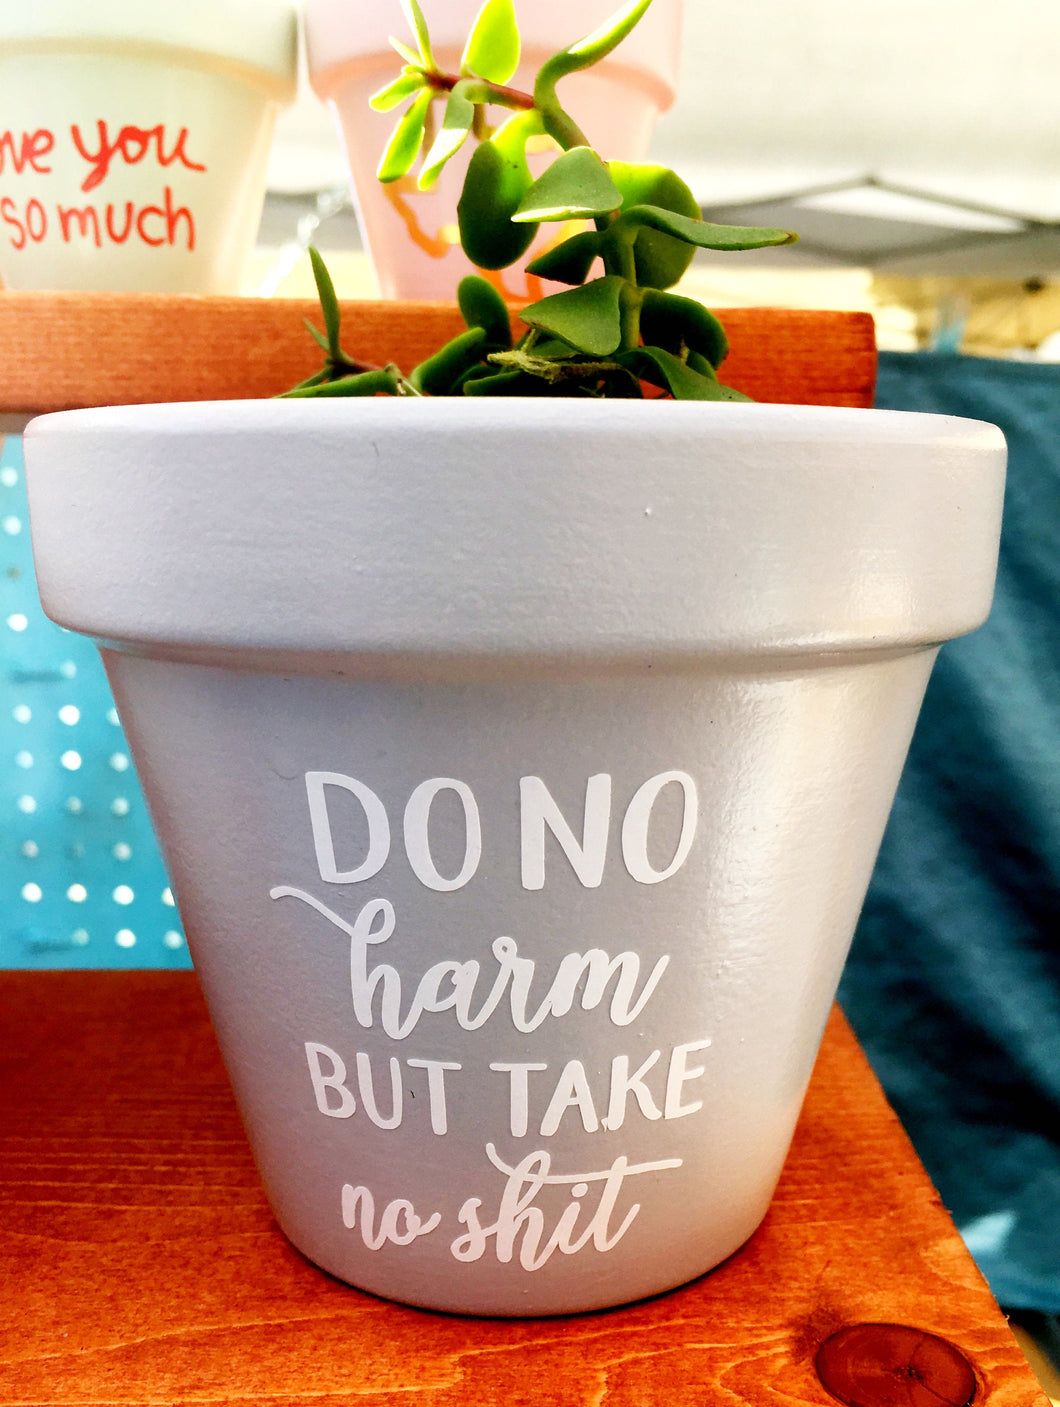 Do No Harm But Take No Shit Pot - Custom Pot - Flower Pot - Funny Flower Pot - Inspirational Gift - Personalized Pot - Knox Pots - Knox Pot